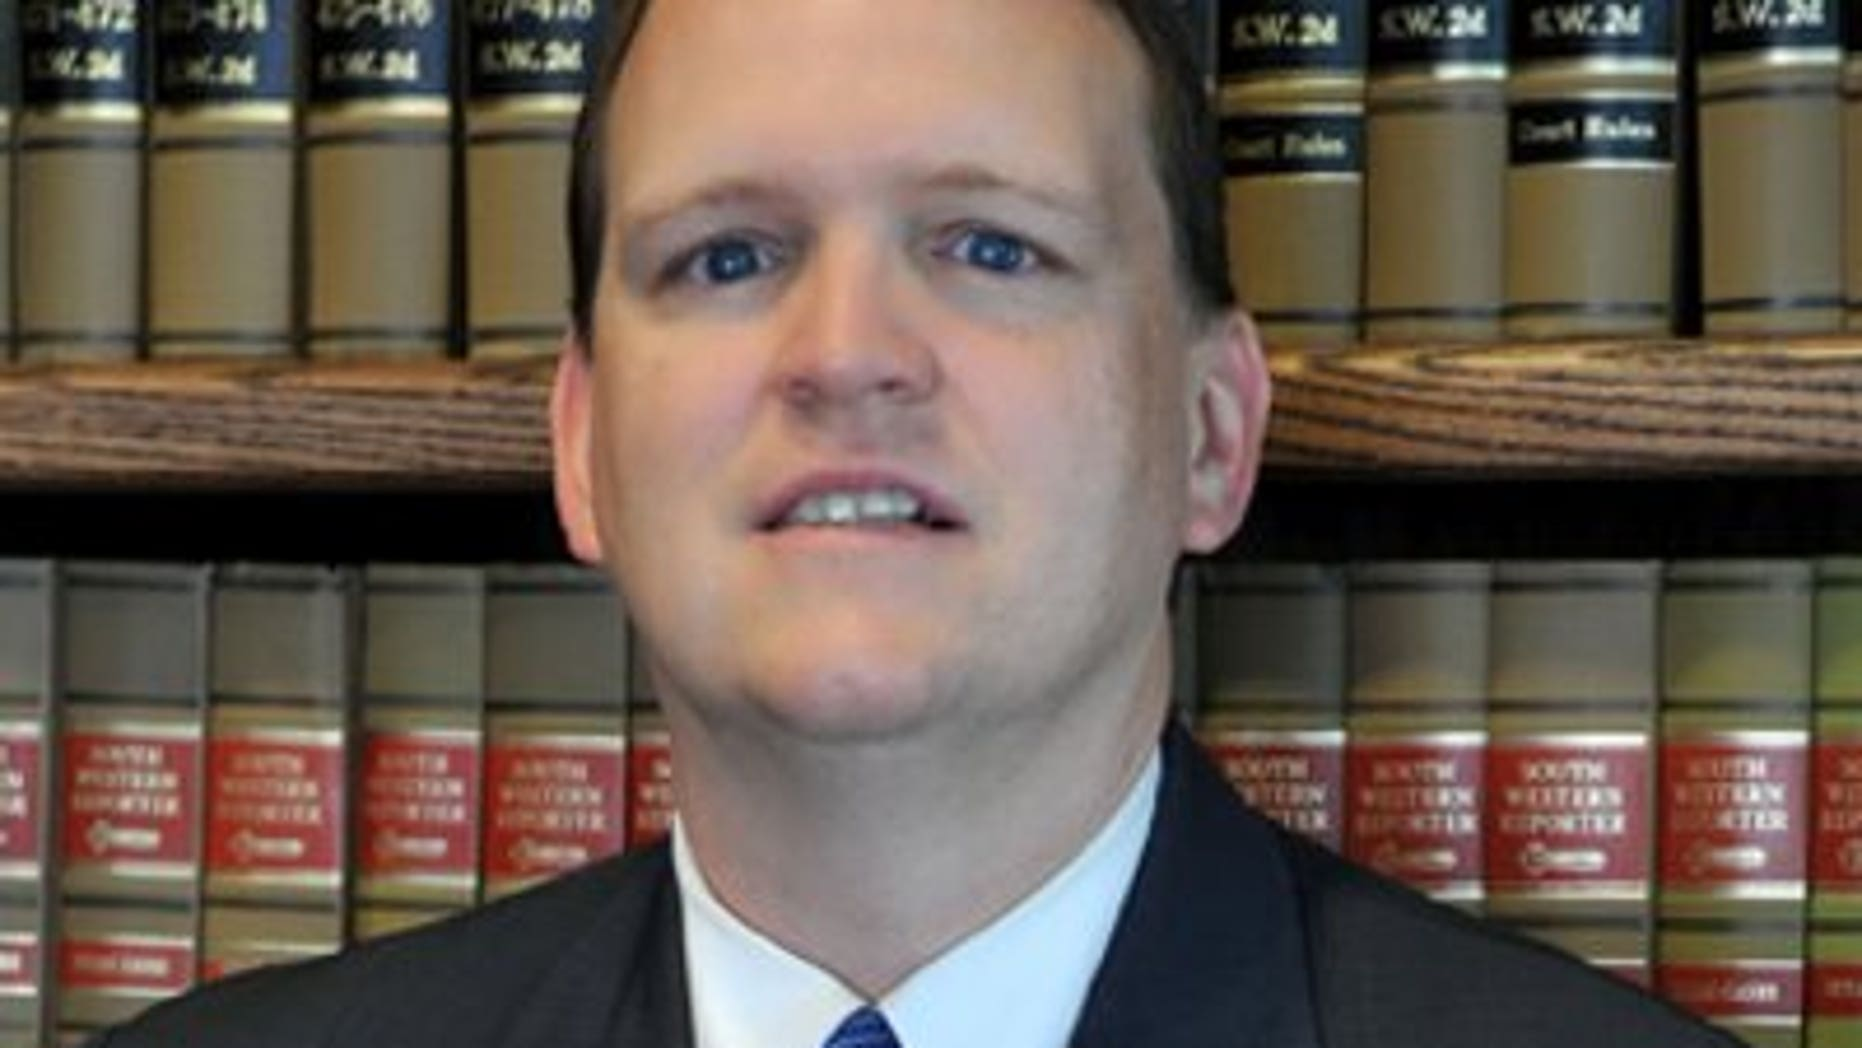 First Assistant Attorney General of Texas Jeff Mateer